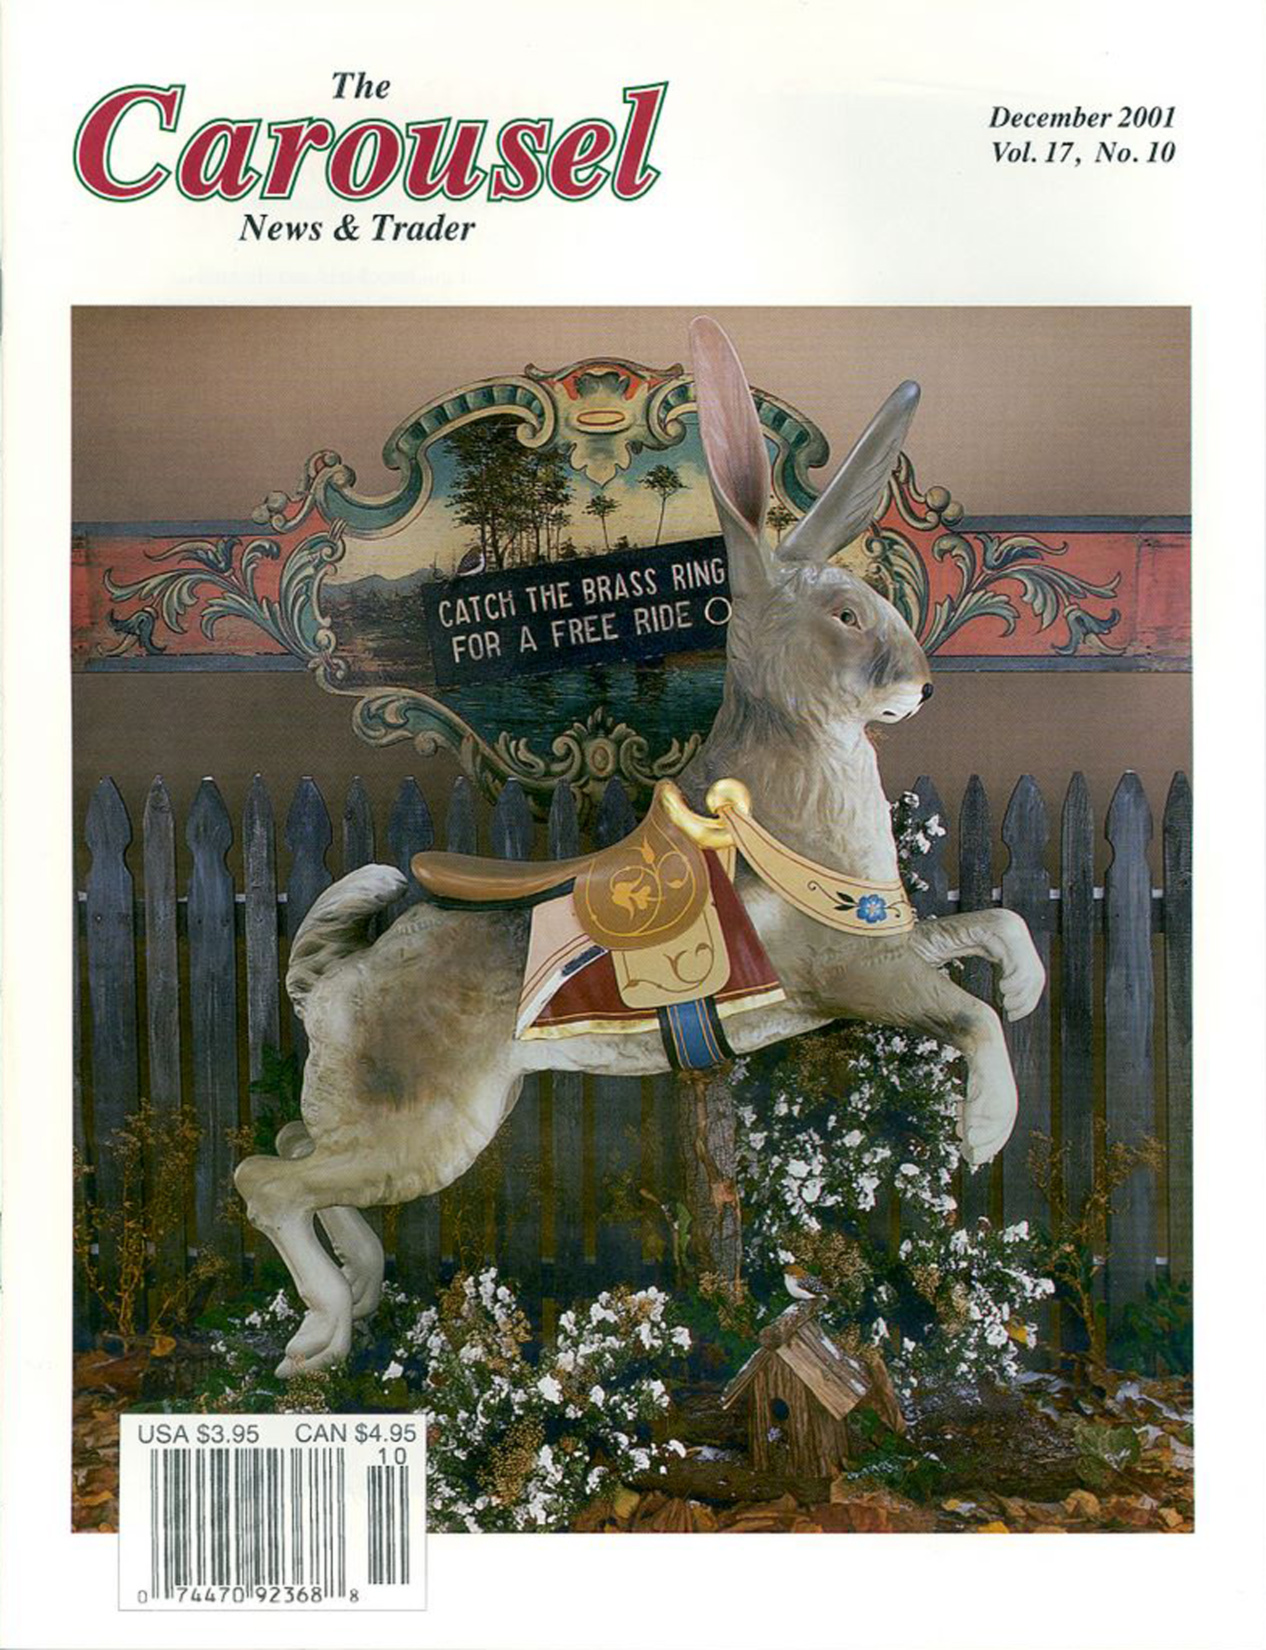 Issue No. 10, Vol. 17 – December 2001